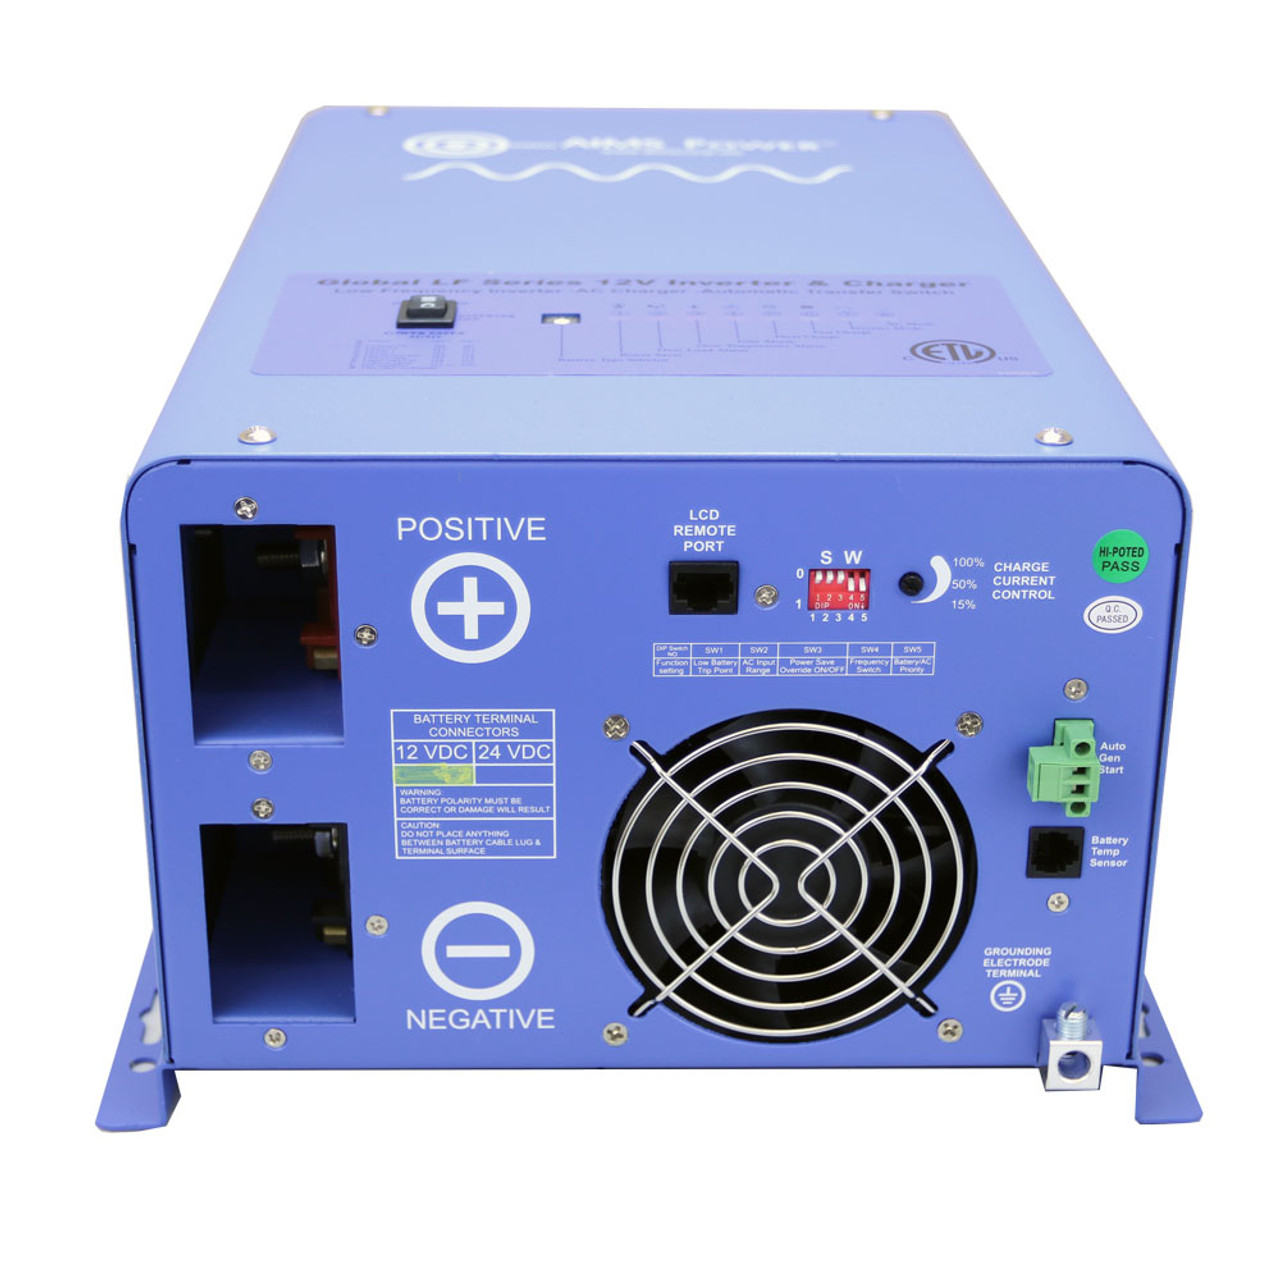 AIMS 1000 Watt Pure Sine Inverter Charger - ETL Certified Conforms to UL458 / CSA Standards